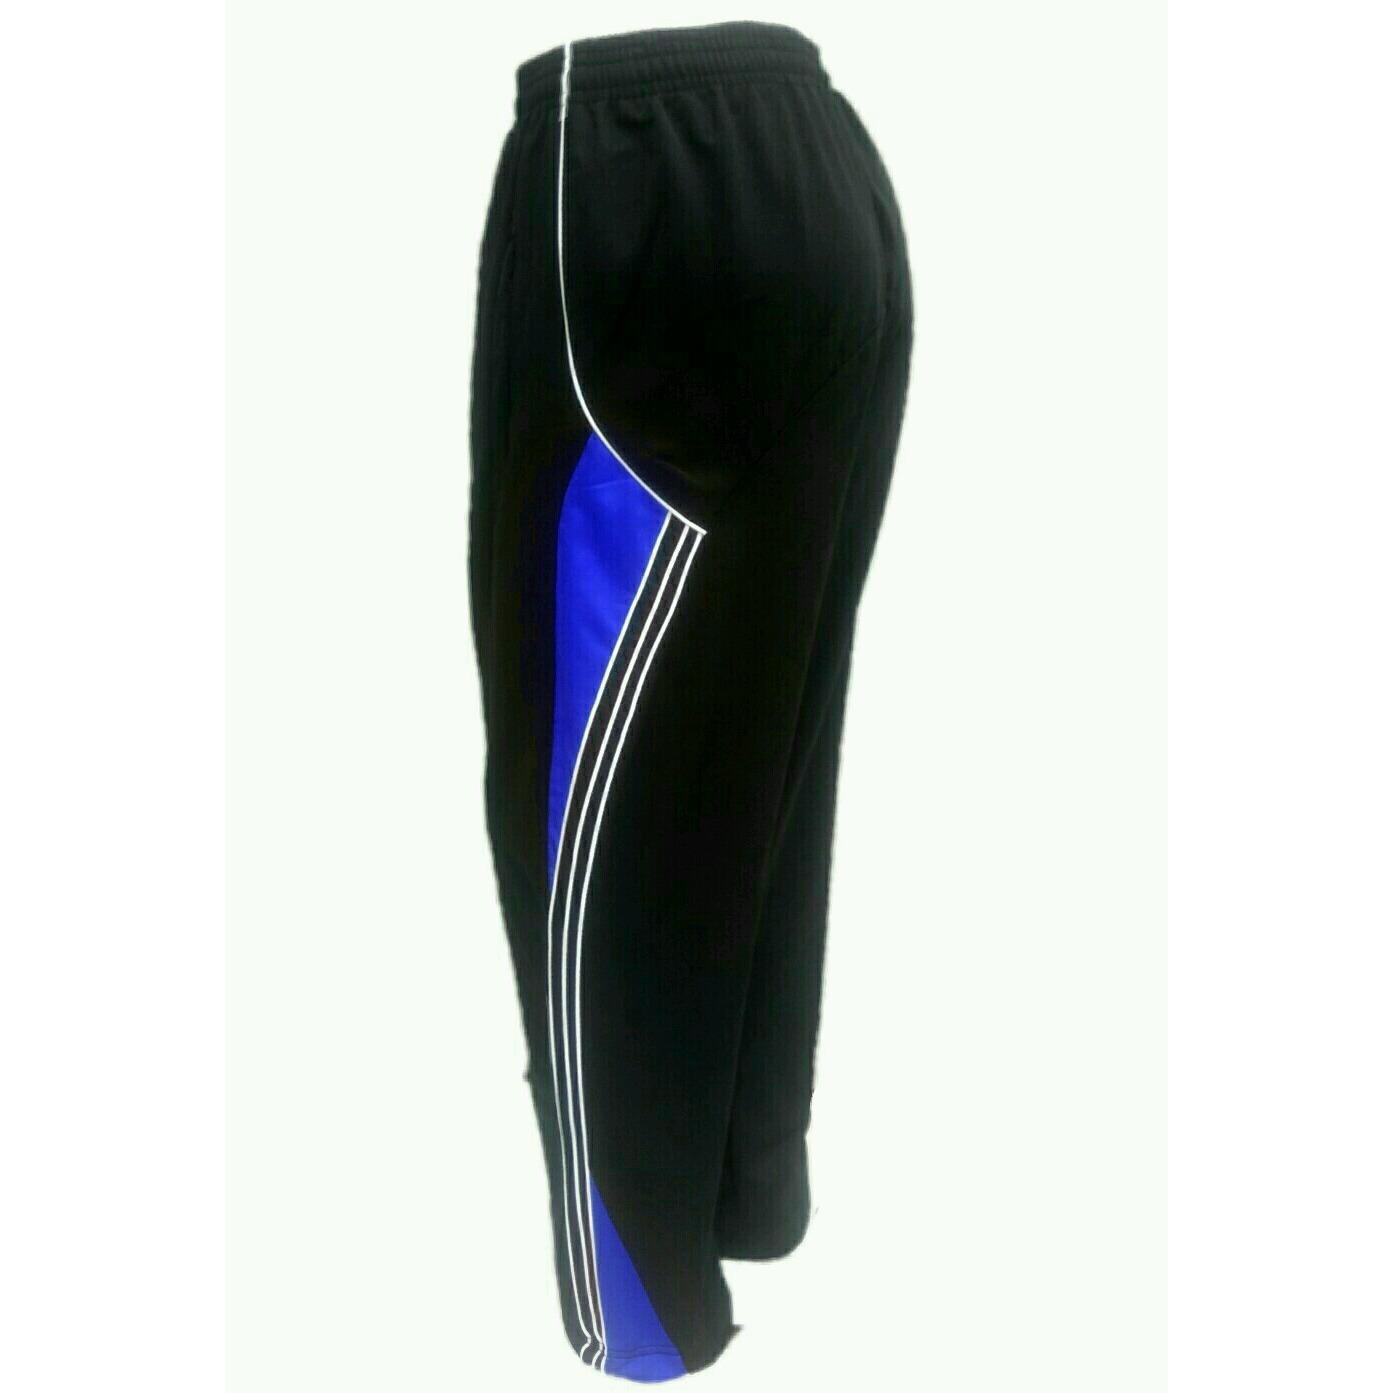 Harga Arsy Sport Celana Training Model Lis 3 Hitam Biru Pon Asli Fashion